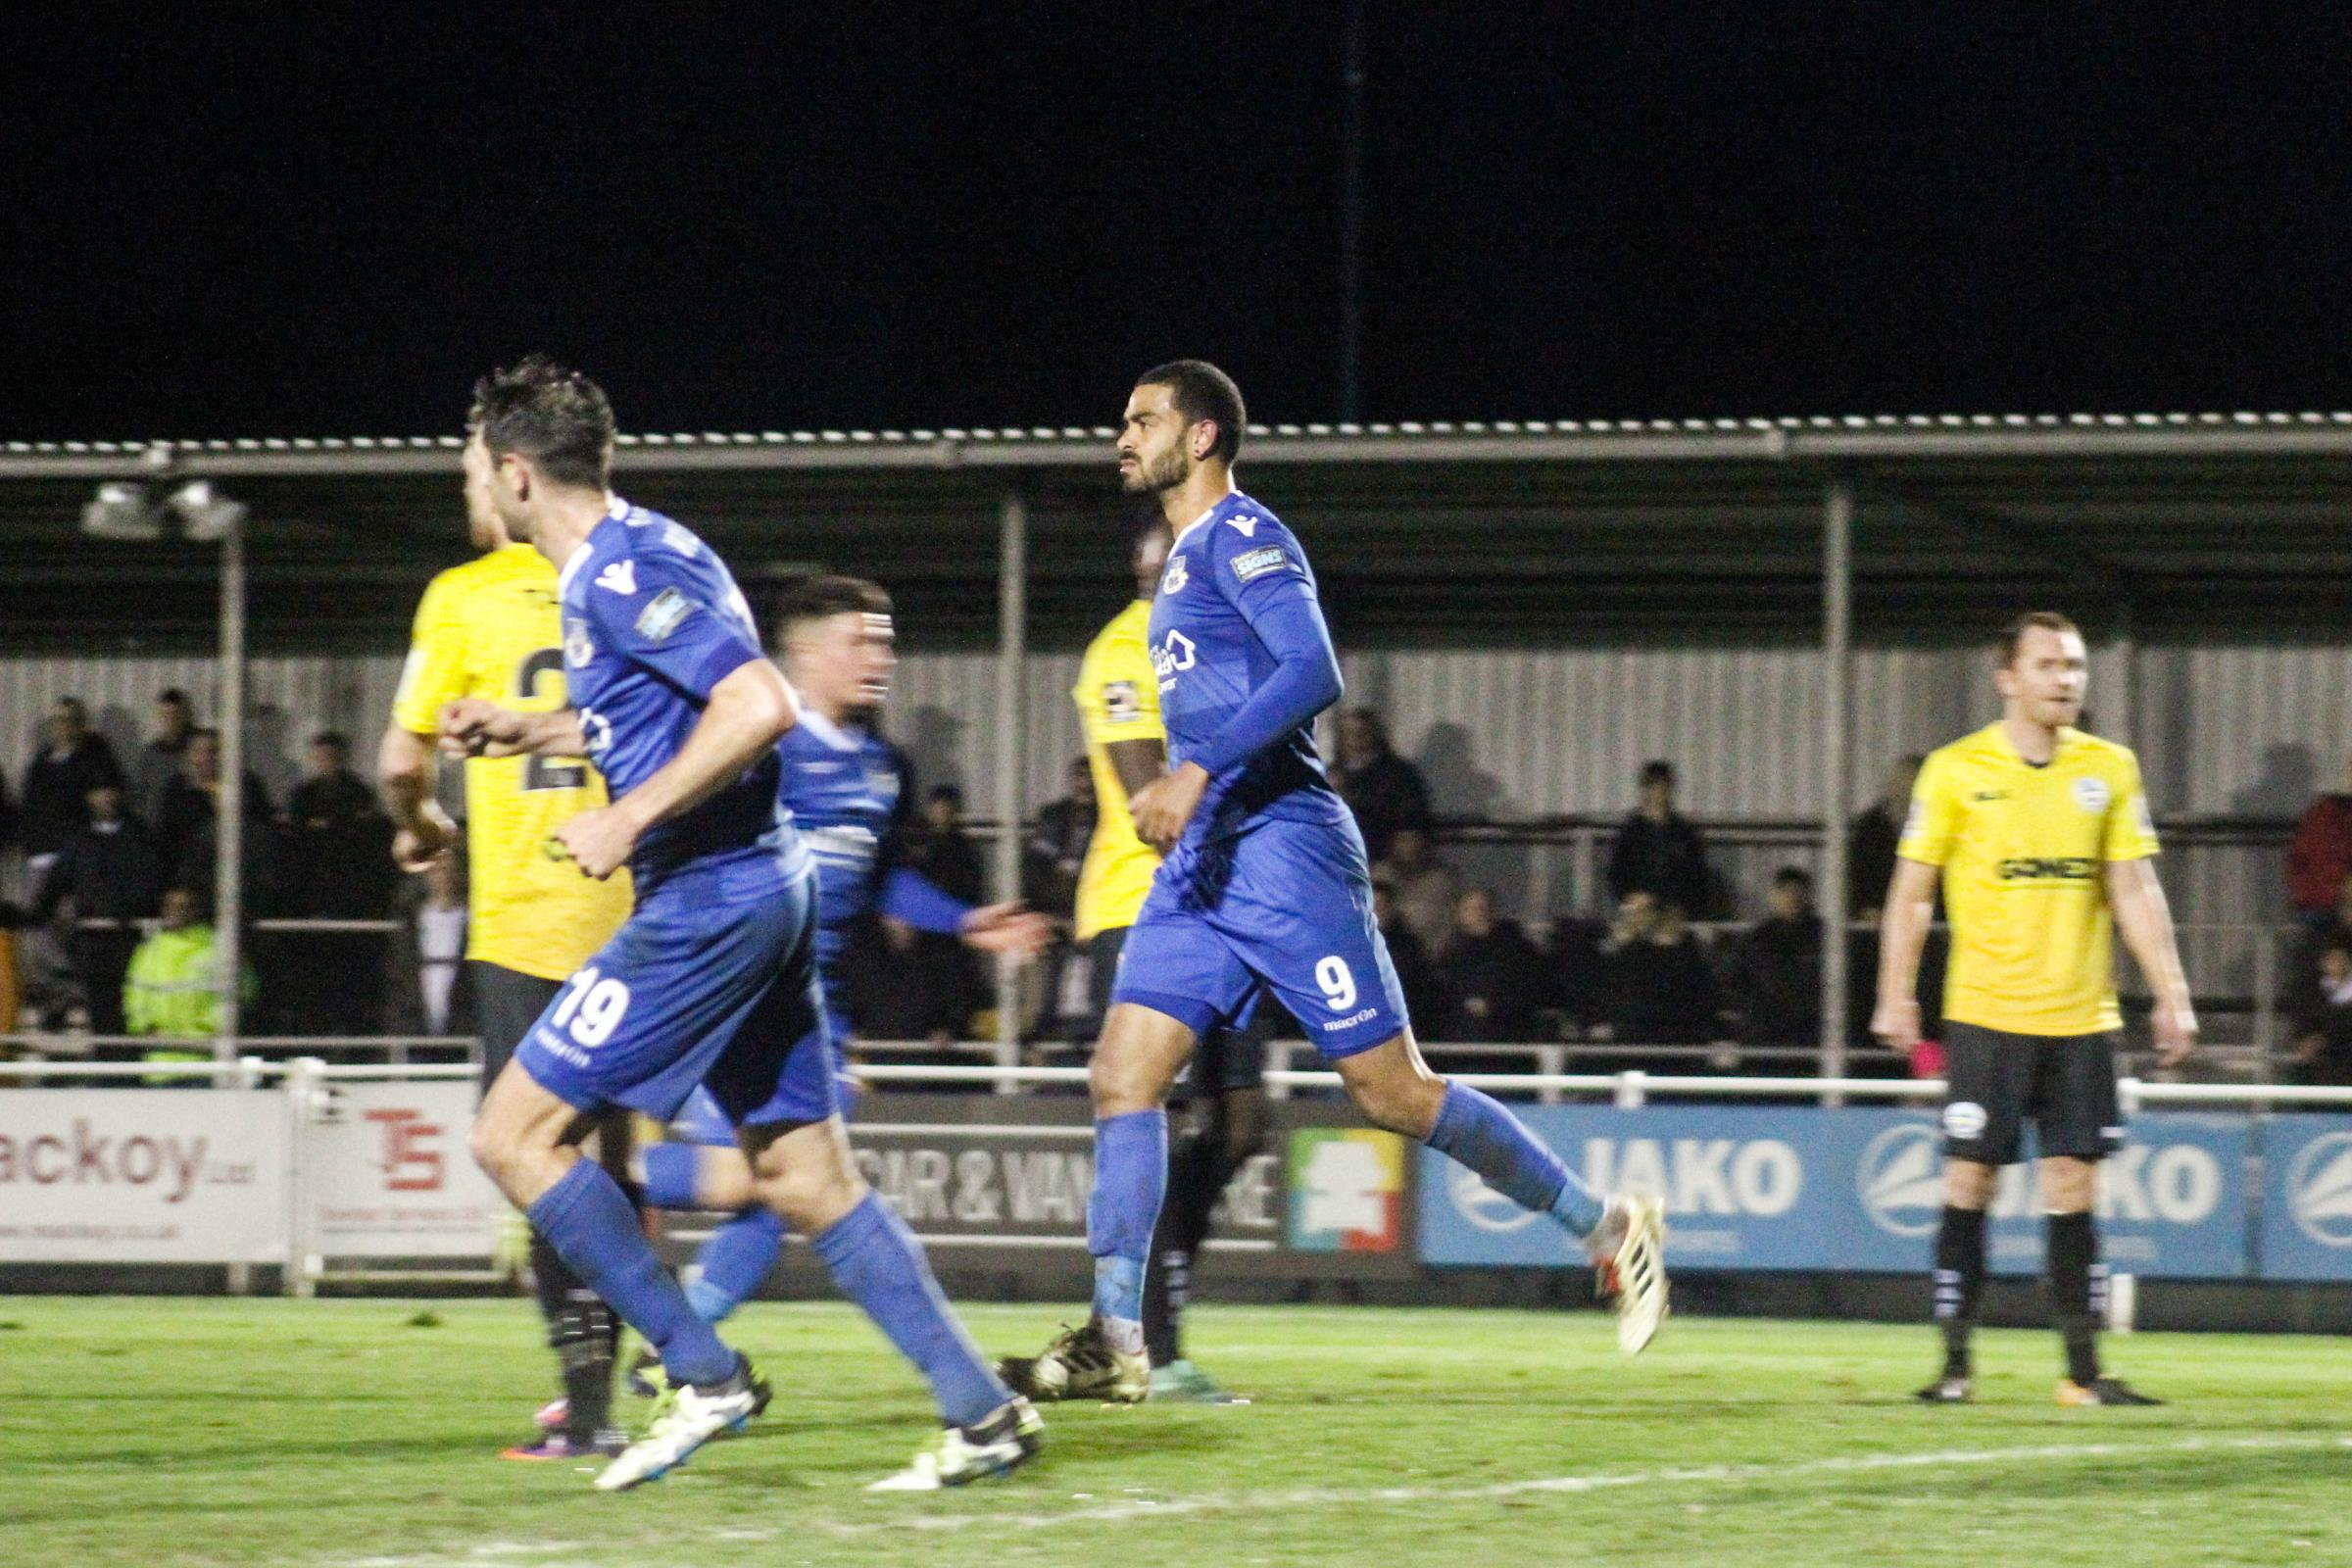 Paul McCallum (No9) turns away after netting the equaliser. Photo: Tom Mulholland